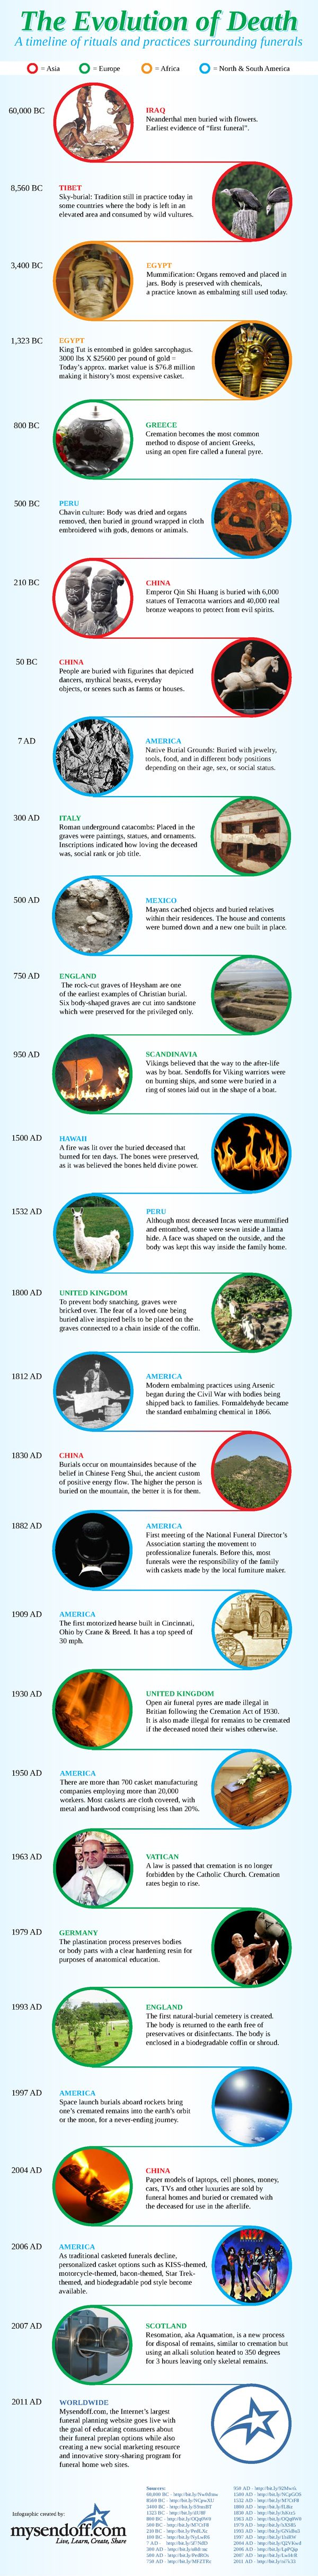 Cemeteries Ghosts Graveyards Spirits:  The Evolution of #Death (Infographic).